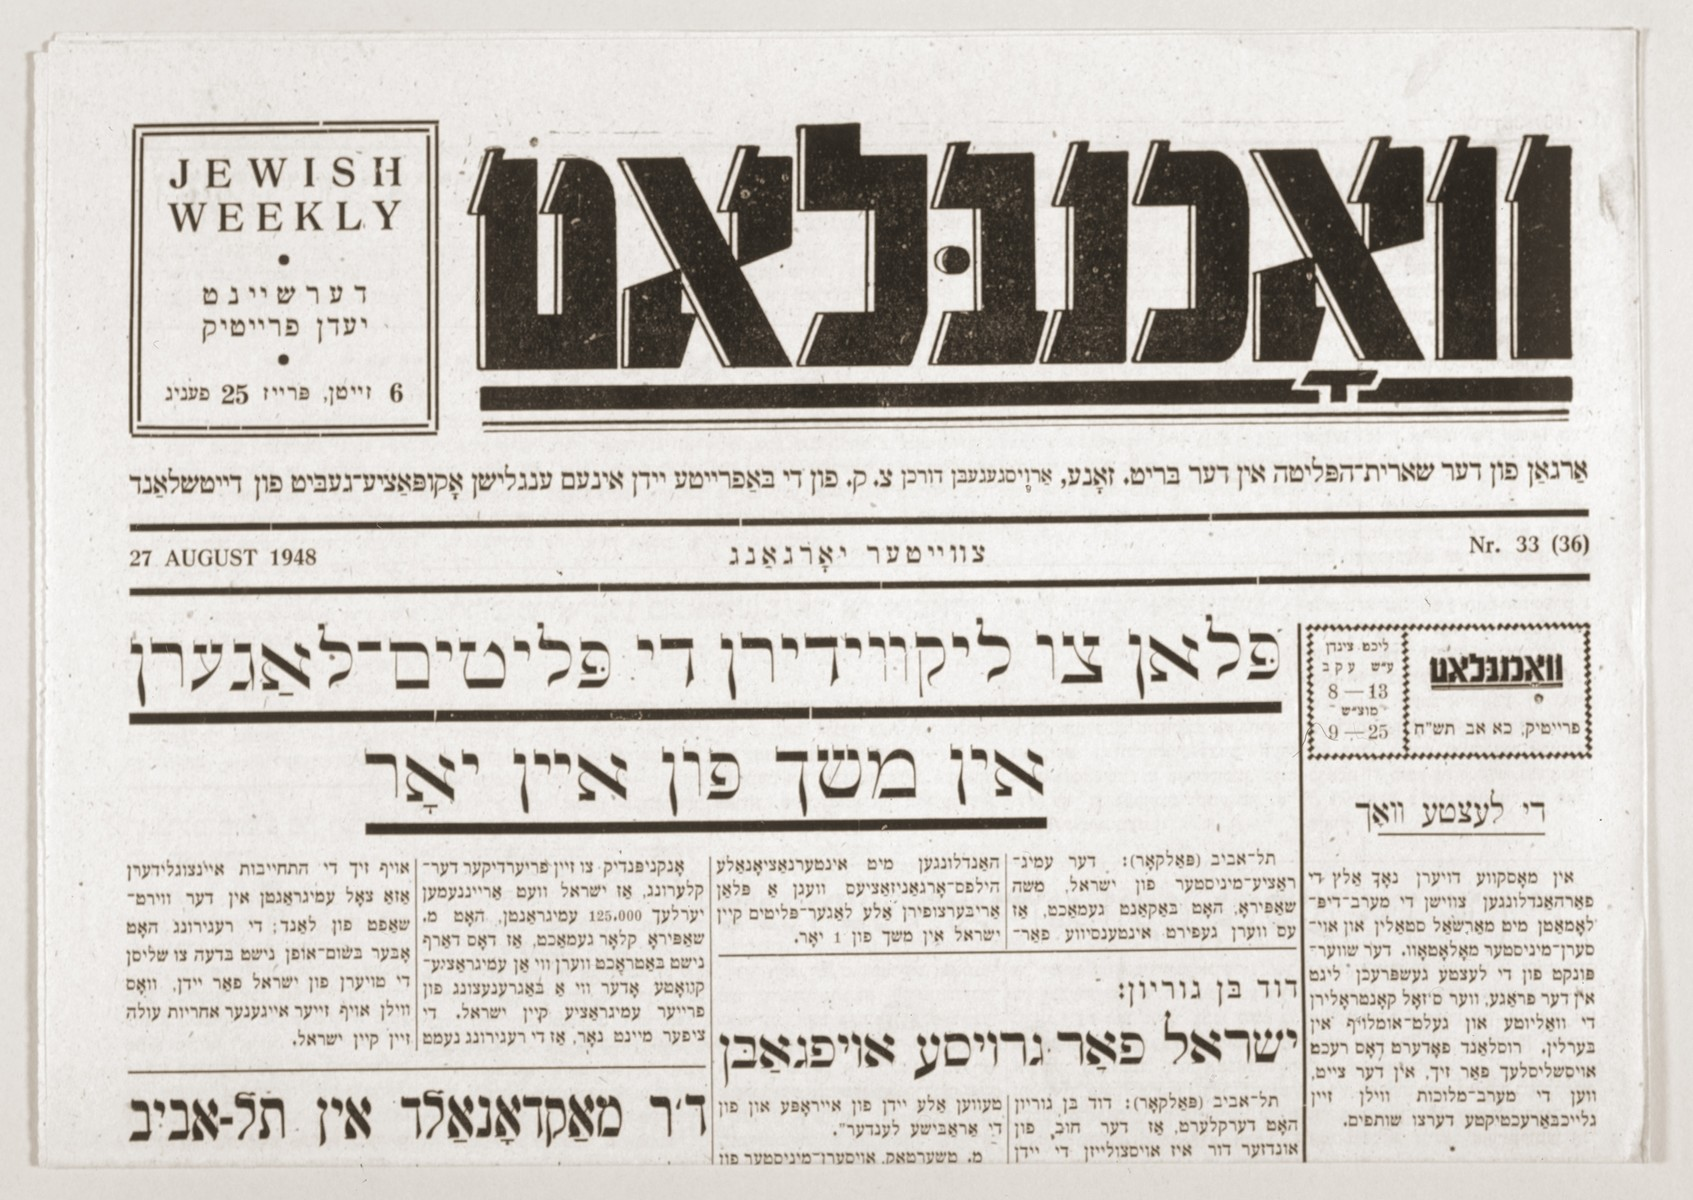 Front page of the Jewish weekly Yiddish newspaper, the Wochenblatt, the organ of Jewish survivors in the British zone of Germany.